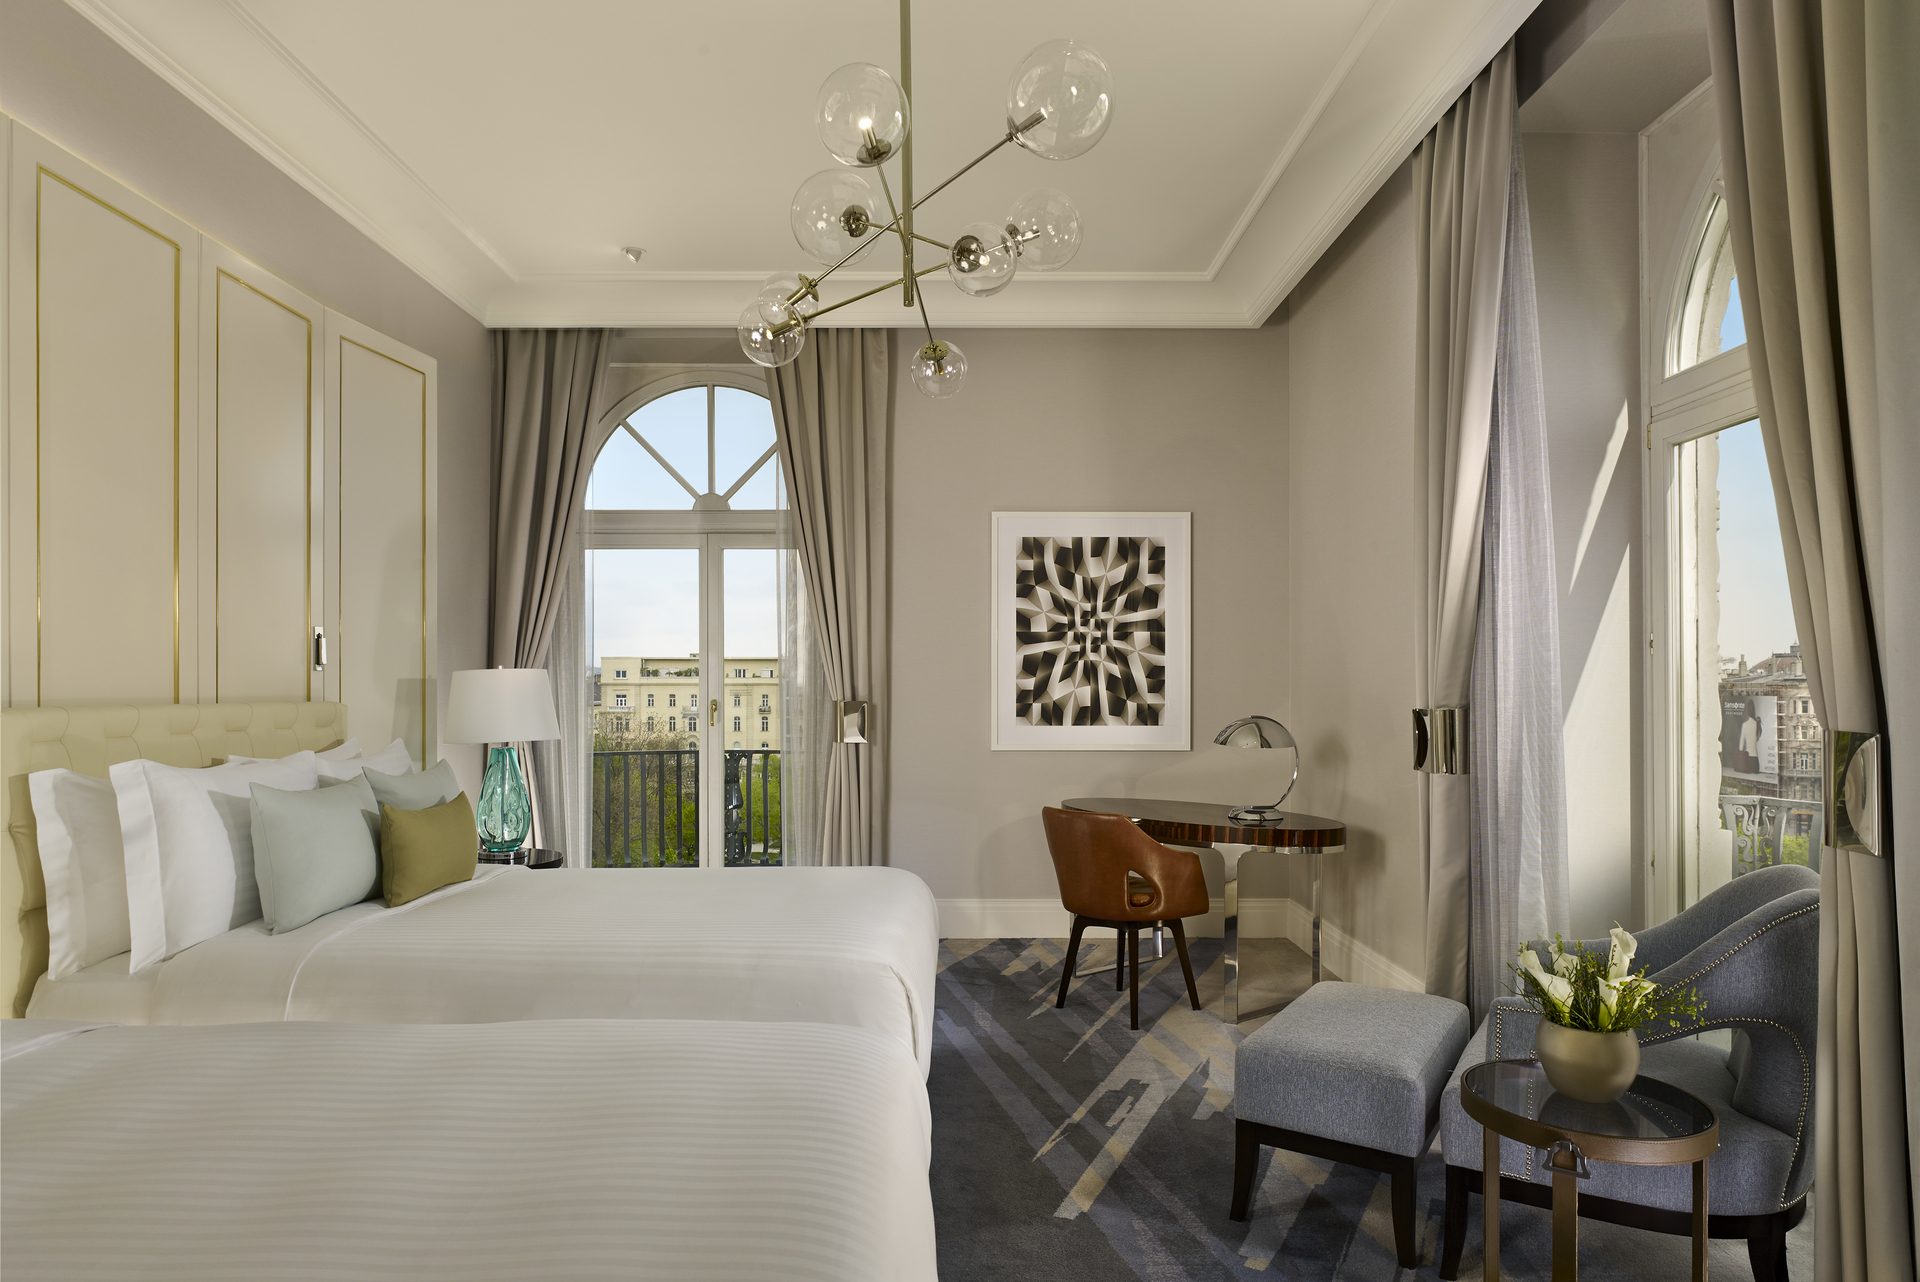 TheRitzCarltonBudapest_Deluxe_Double_Room.jpg